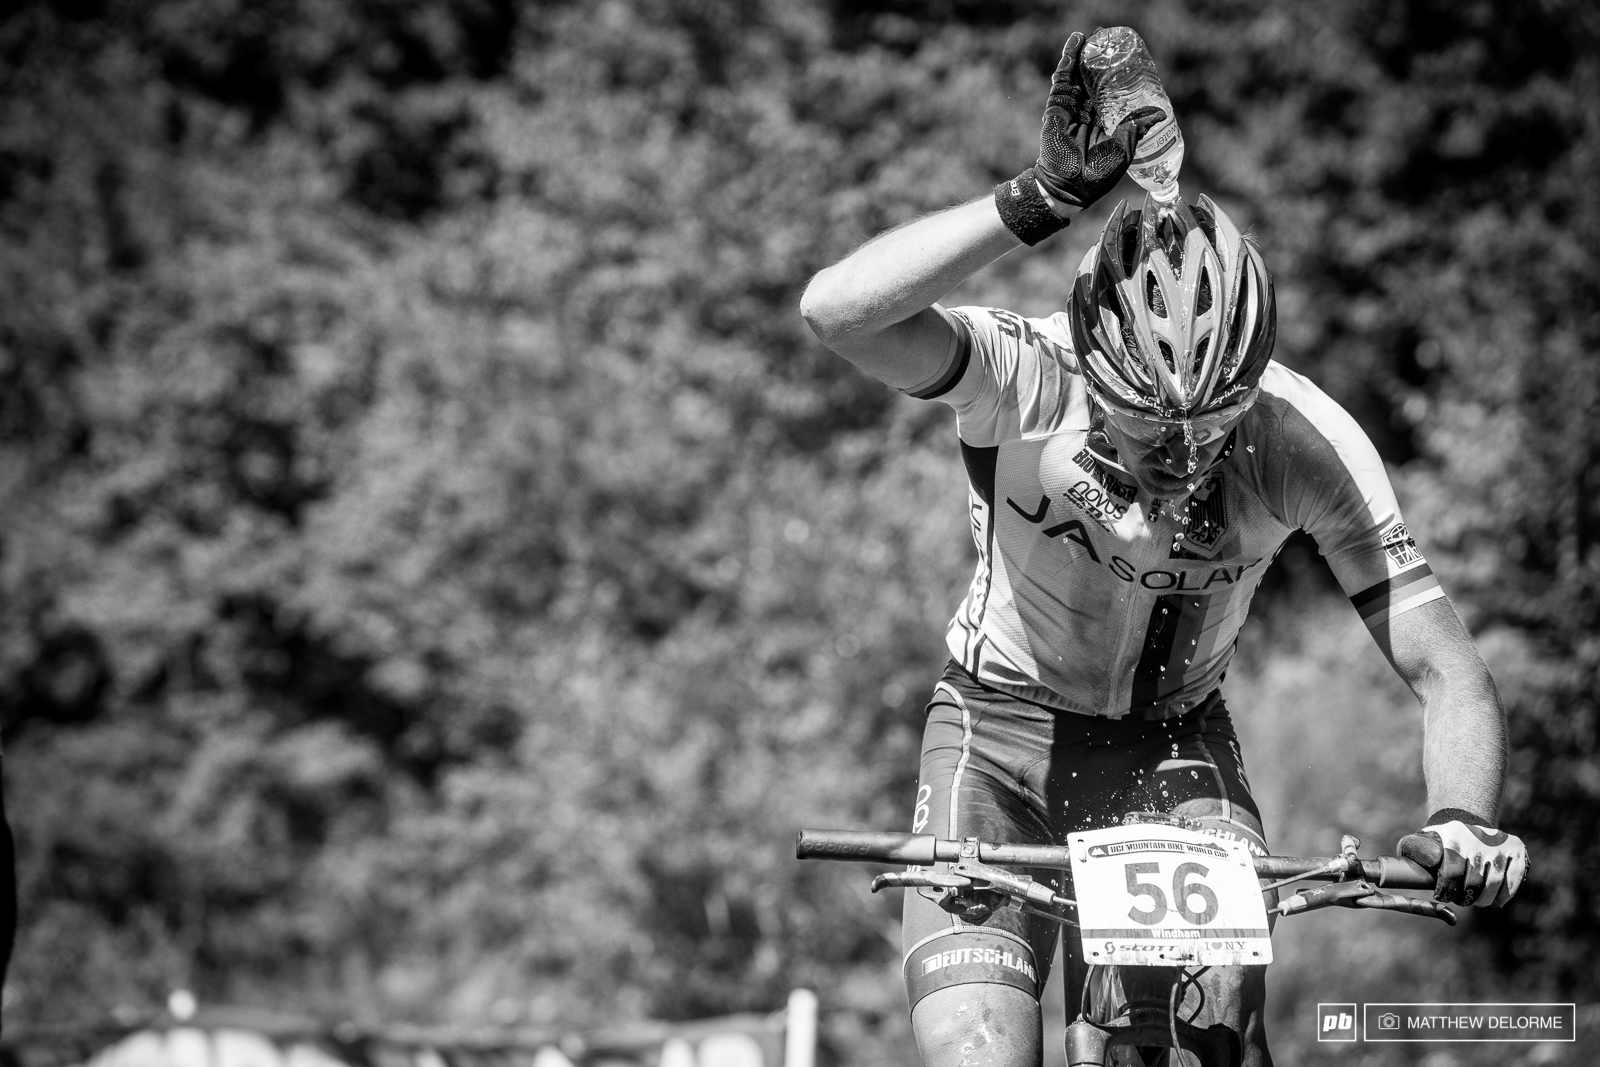 At the top tech zone most racers chose to cool down rather than take on drinking water.